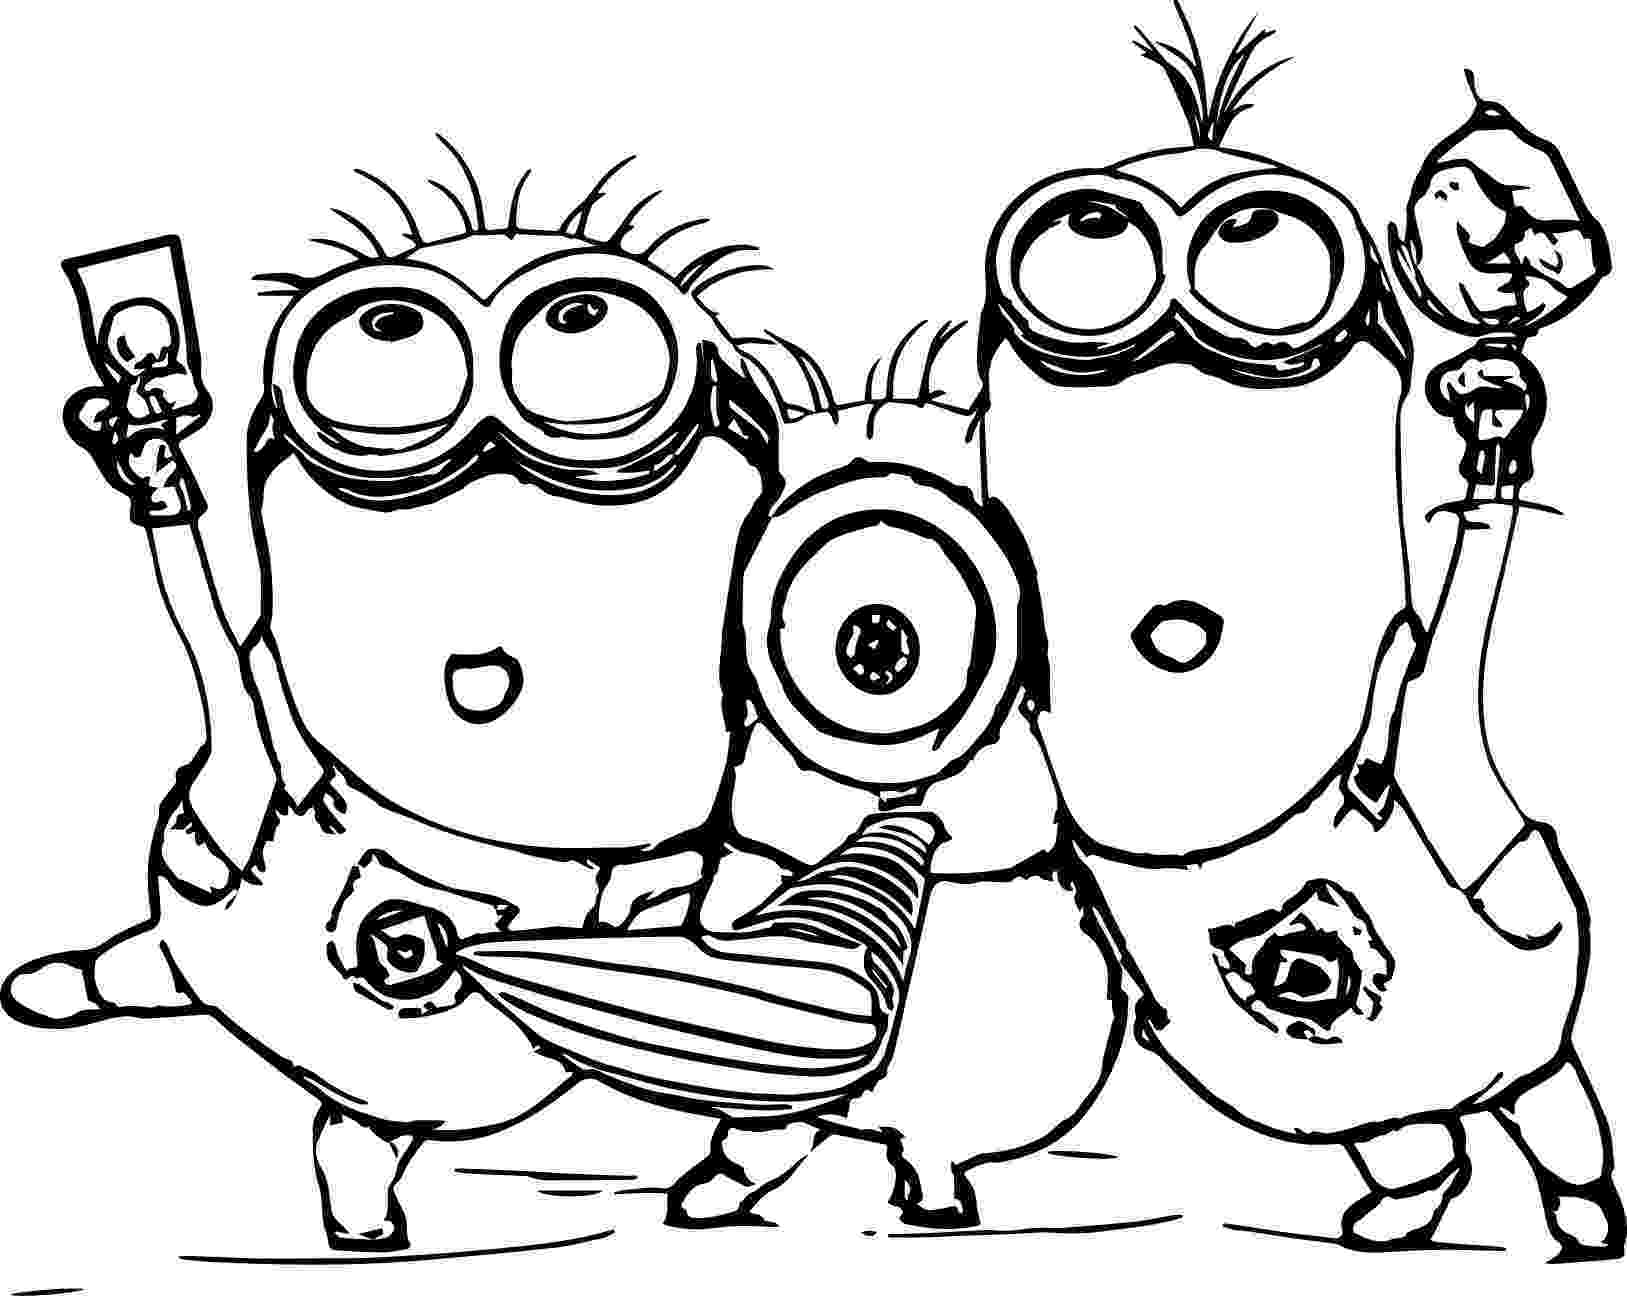 minion coloring minion coloring pages best coloring pages for kids minion coloring 1 3